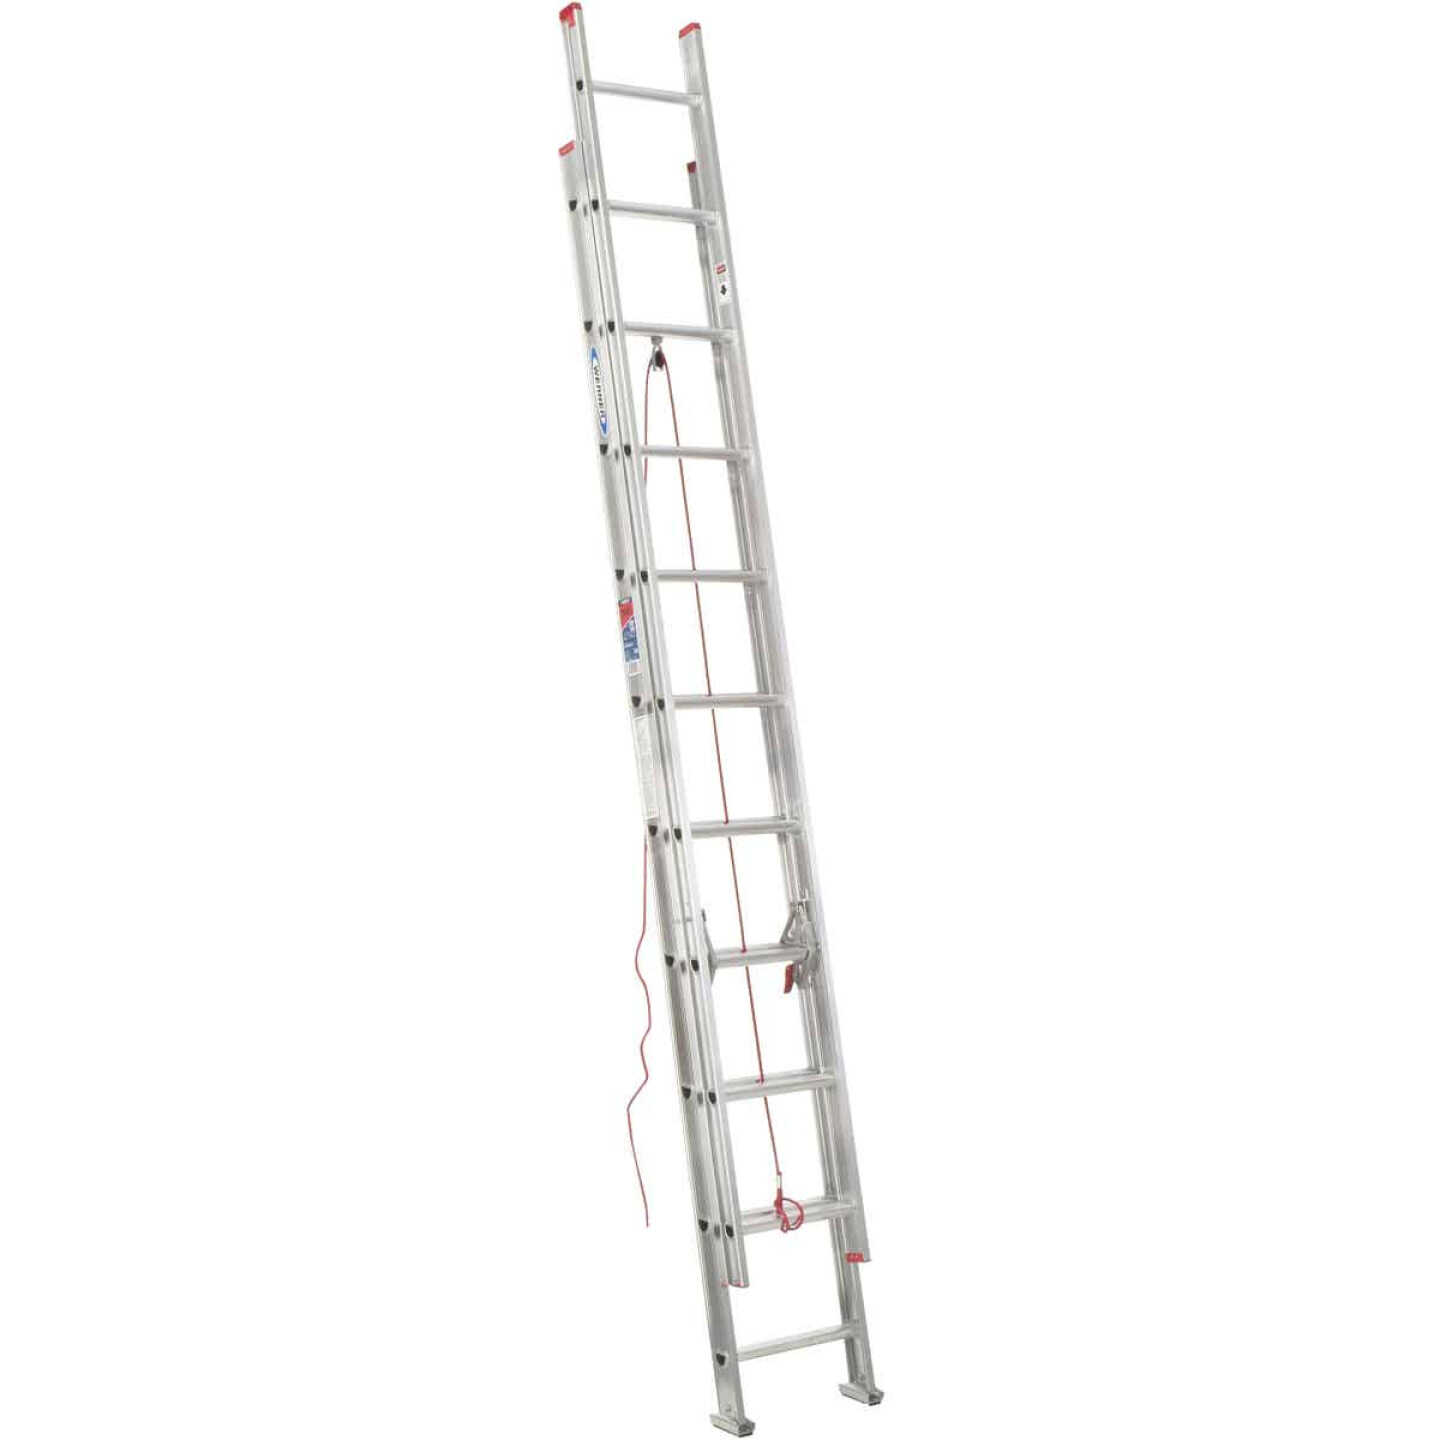 Werner 20 Ft. Aluminum Extension Ladder with 200 Lb. Load Capacity Type III Duty Rating Image 1